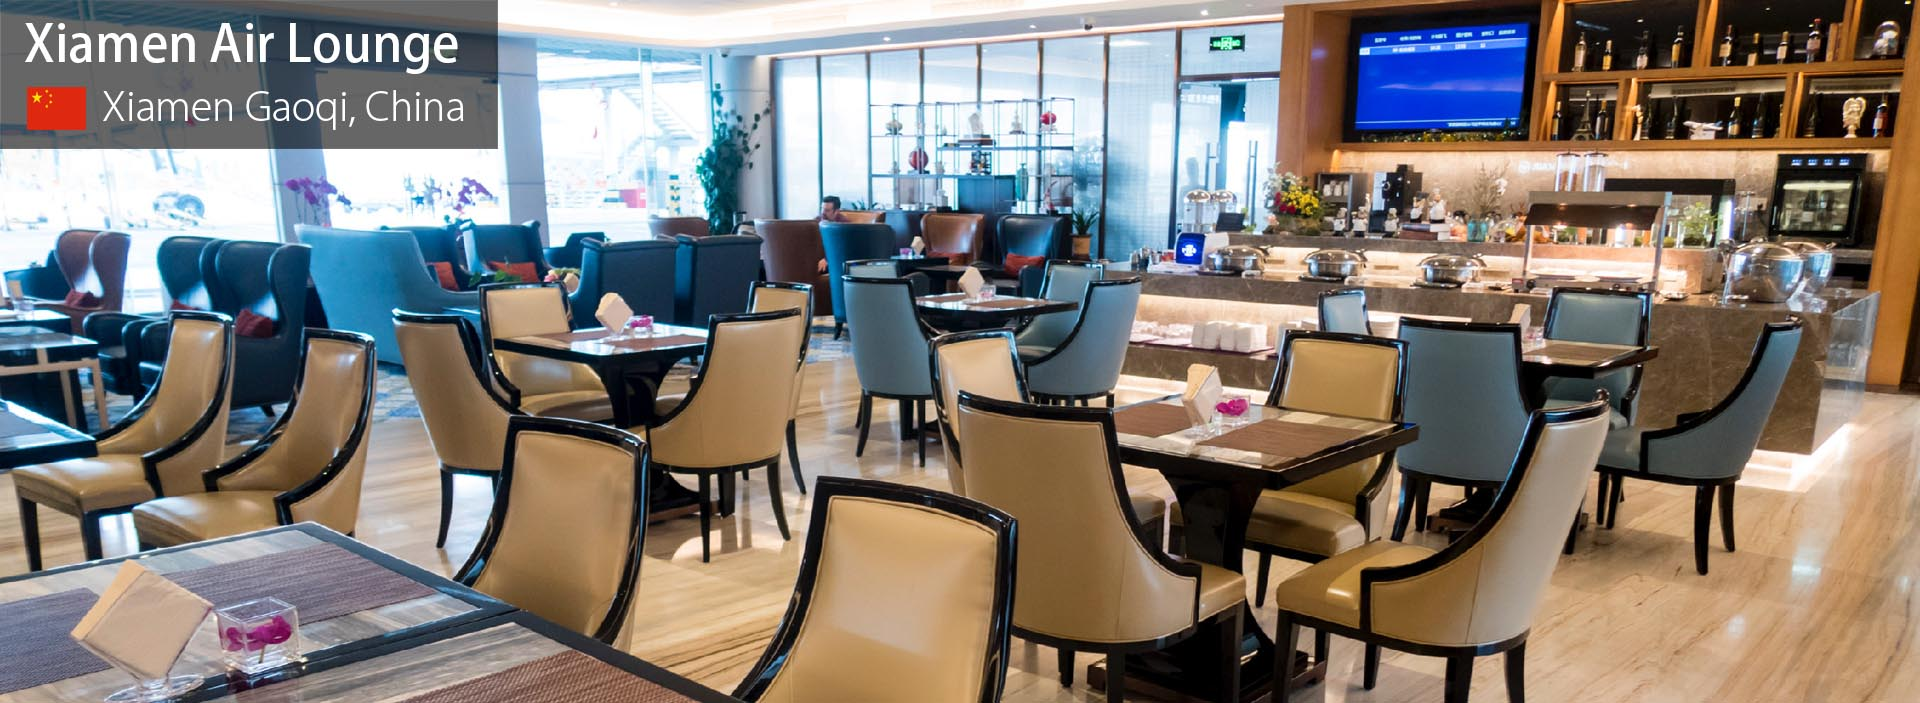 Lounge Review: Xiamen Air First and Business Class Lounge at Xiamen Gaoqi